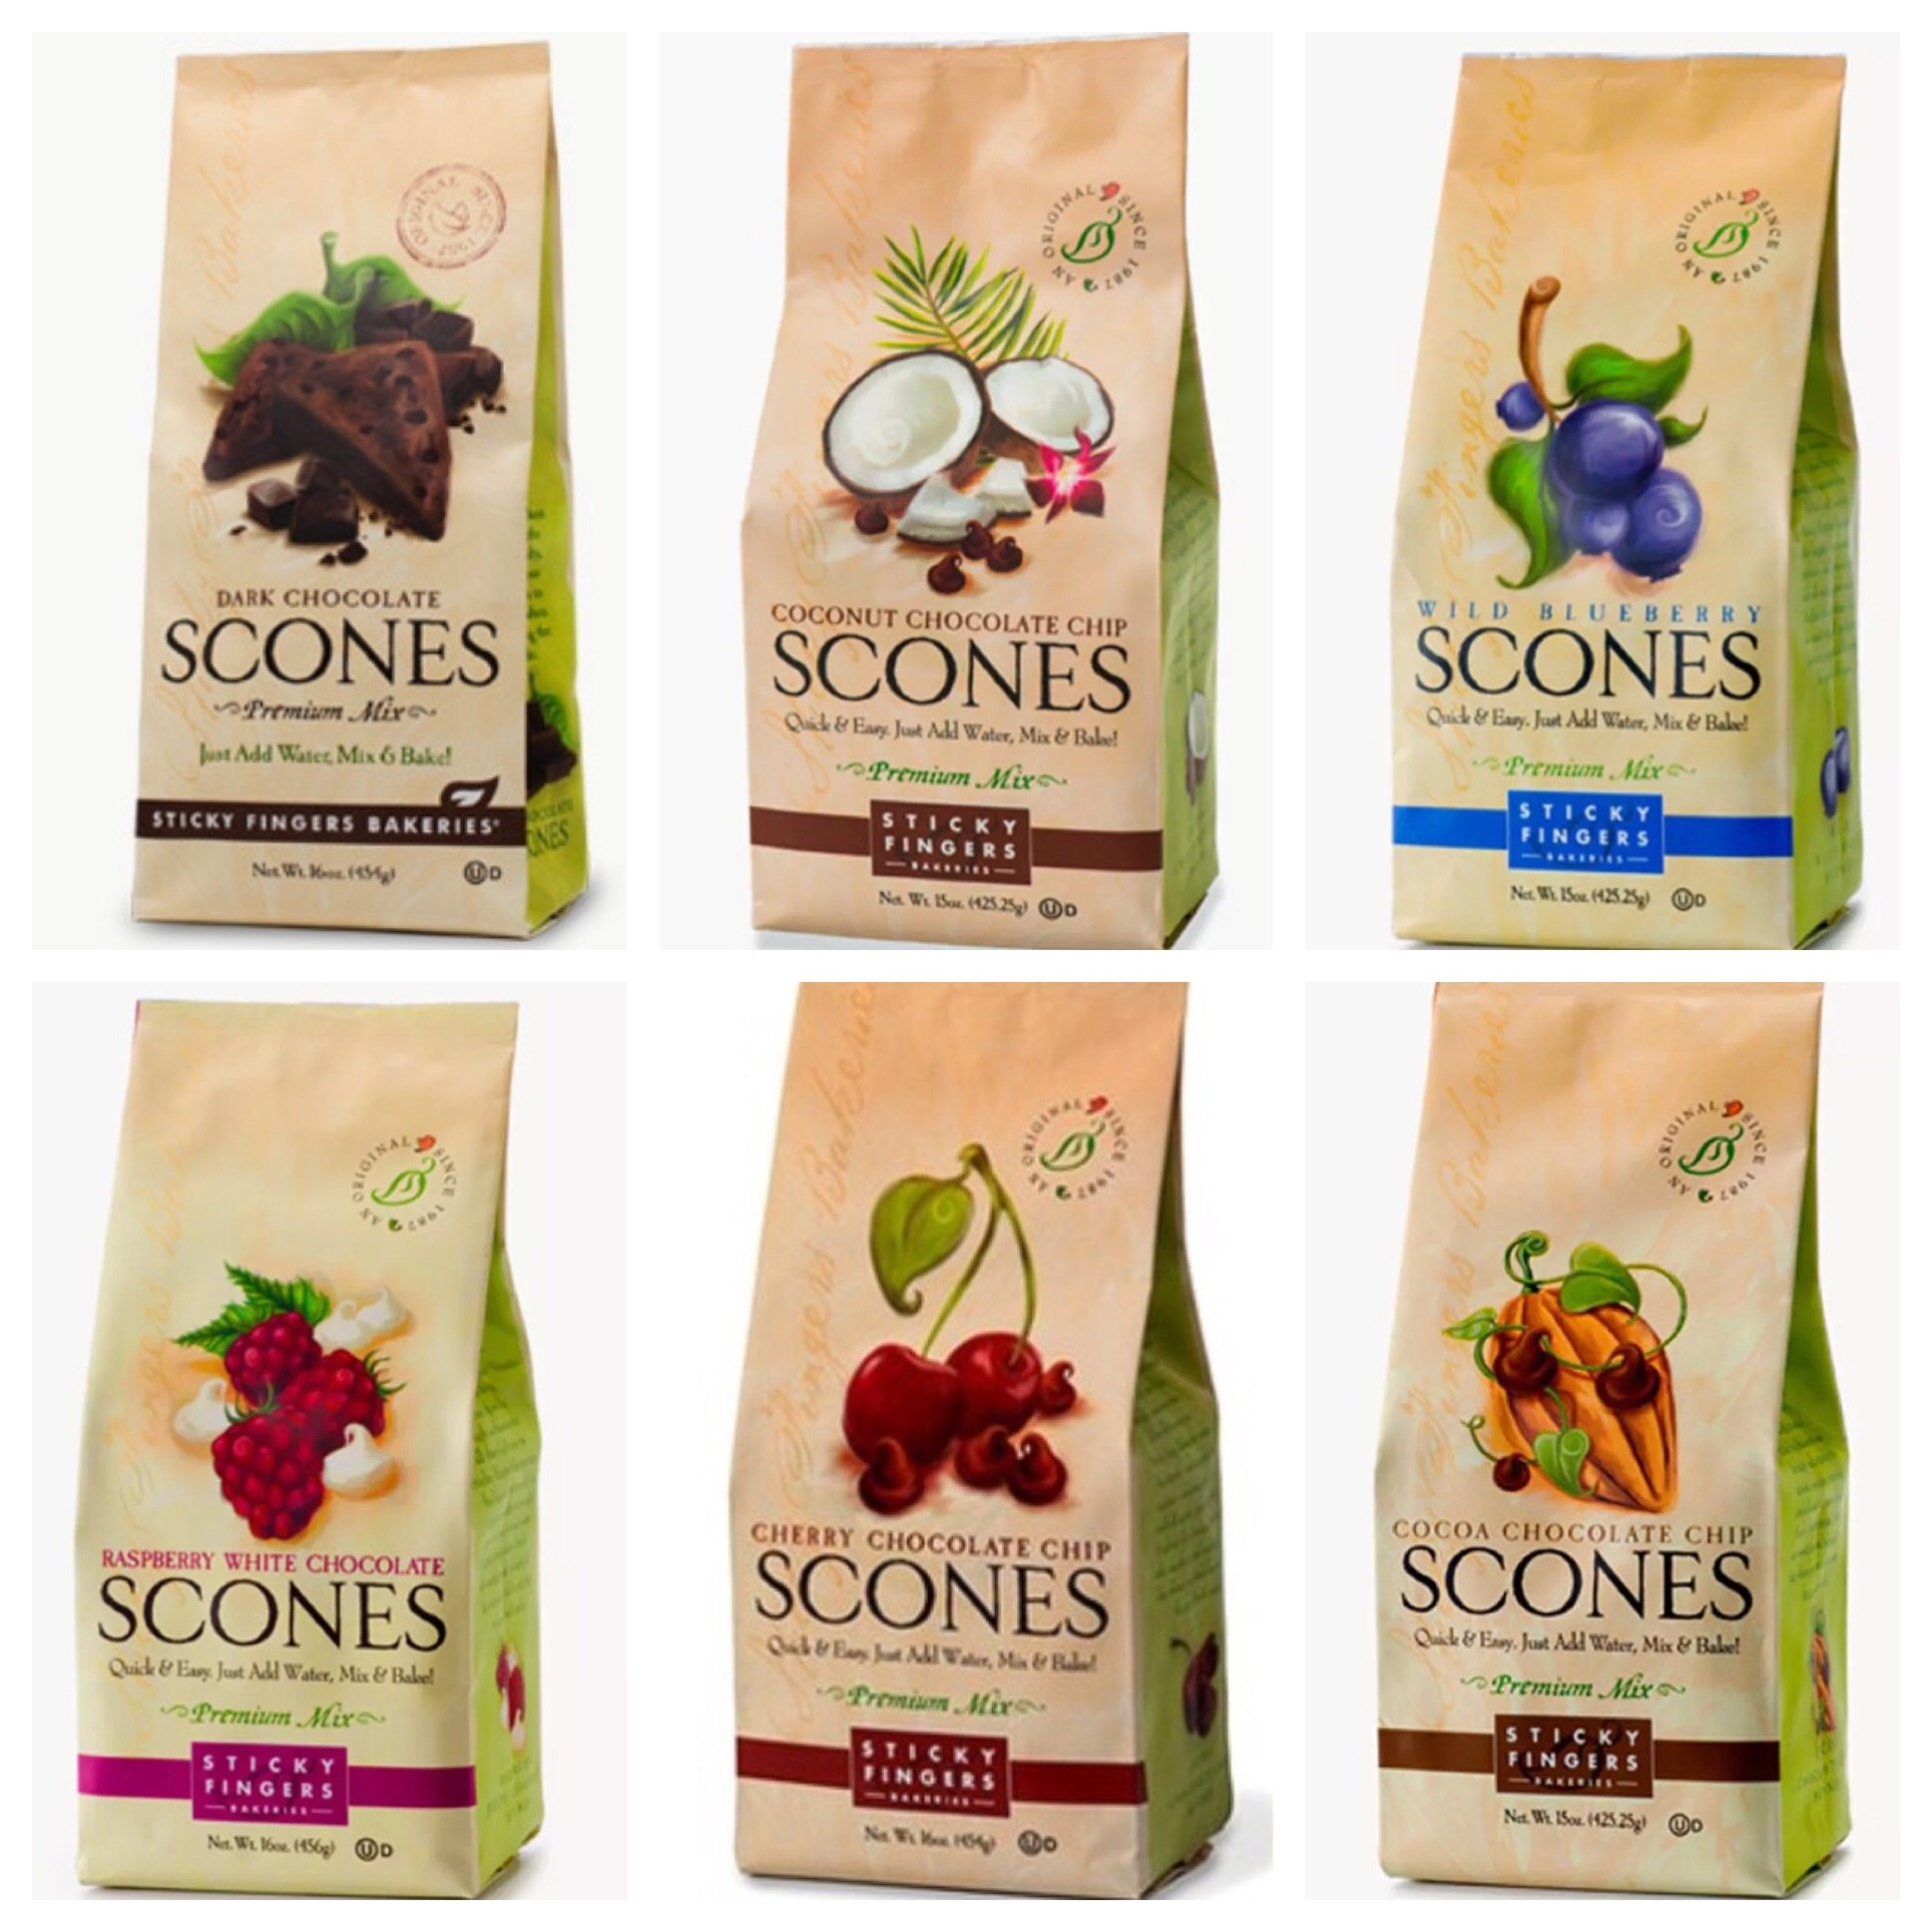 Sticky Fingers Bakeries Scones Mixes (Variety - Pack of 6) Raspberry White Chocolate, Wild Blueberry, Cherry Chocolate Chip, Cocoa Chocolate Chip, Toasted Coconut Chocolate Chip, and Dark Chocolate